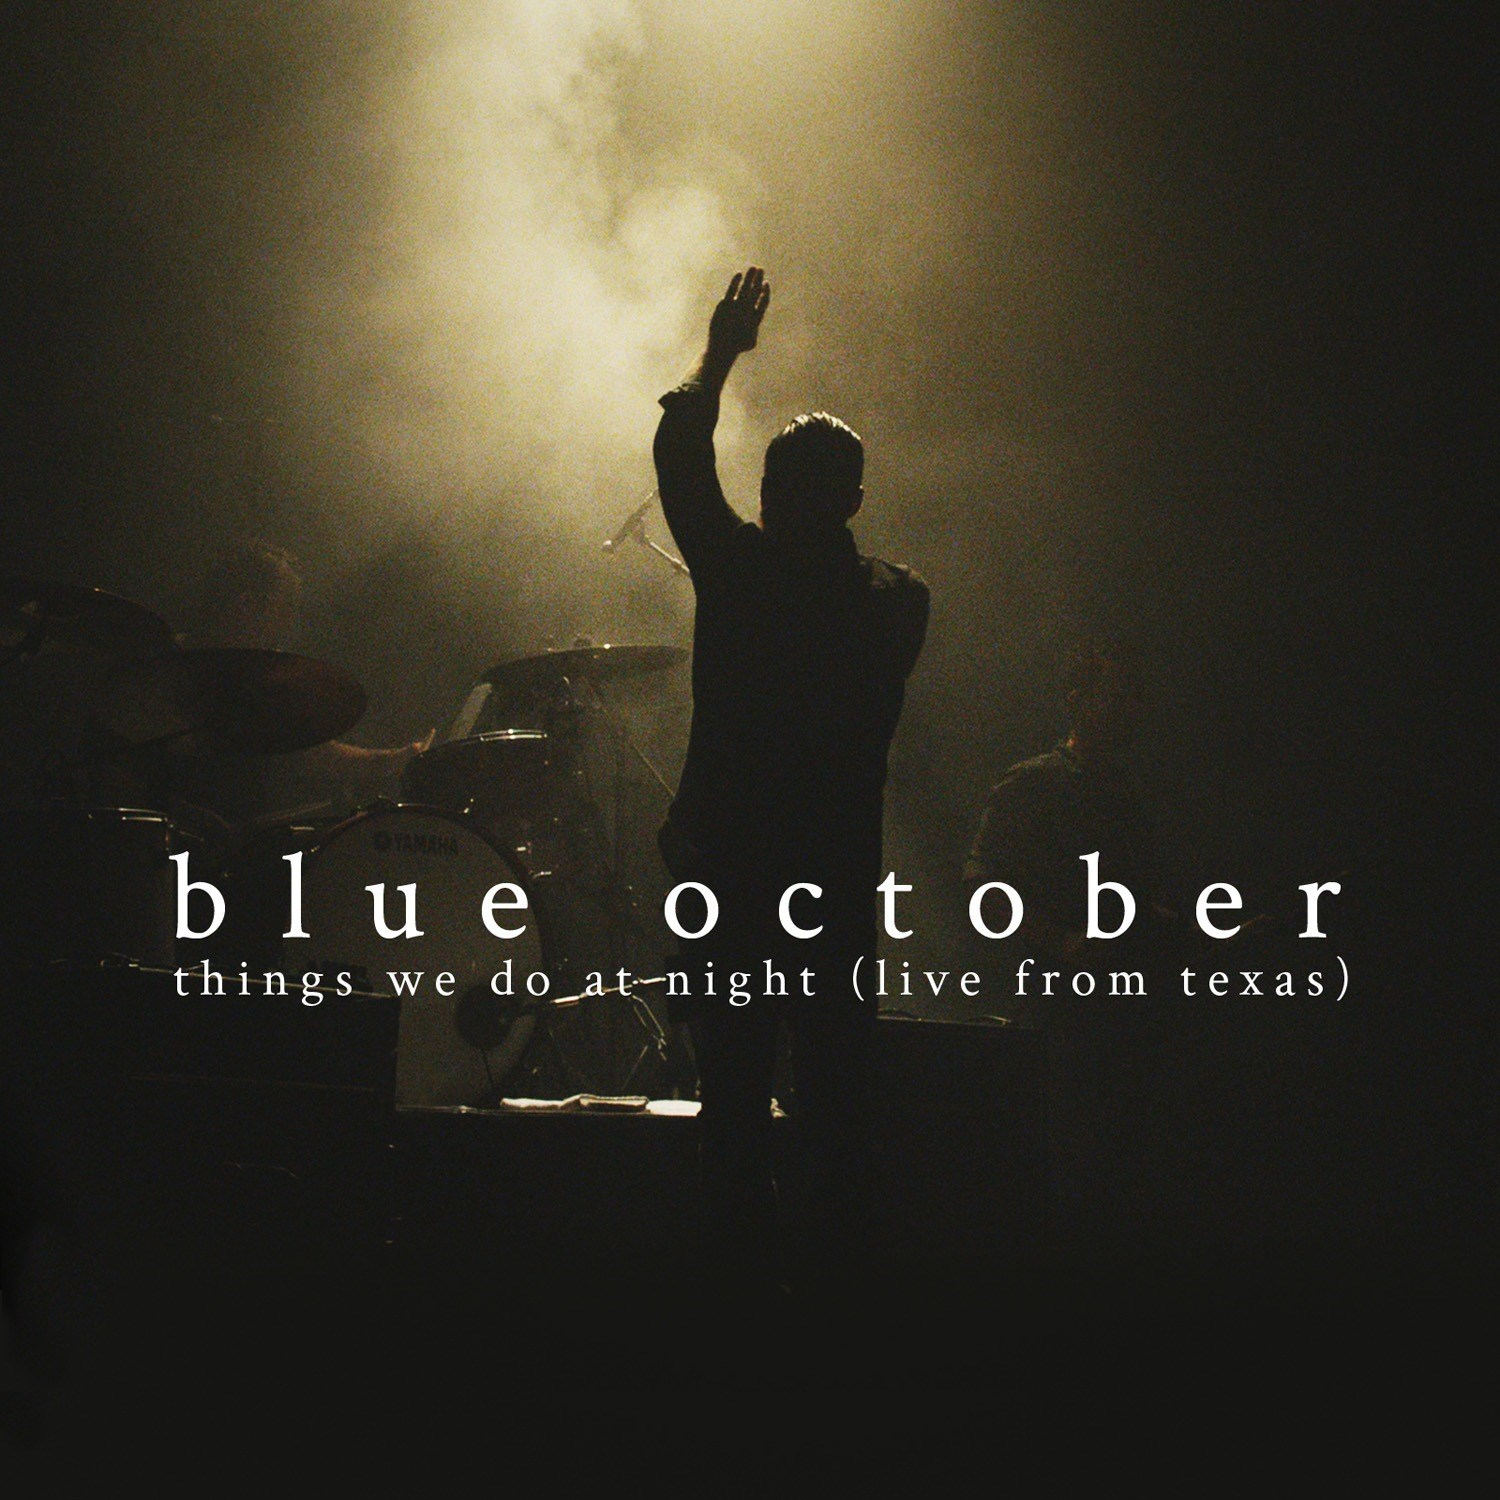 Blue October: Things We Do at Night - Live from Texas